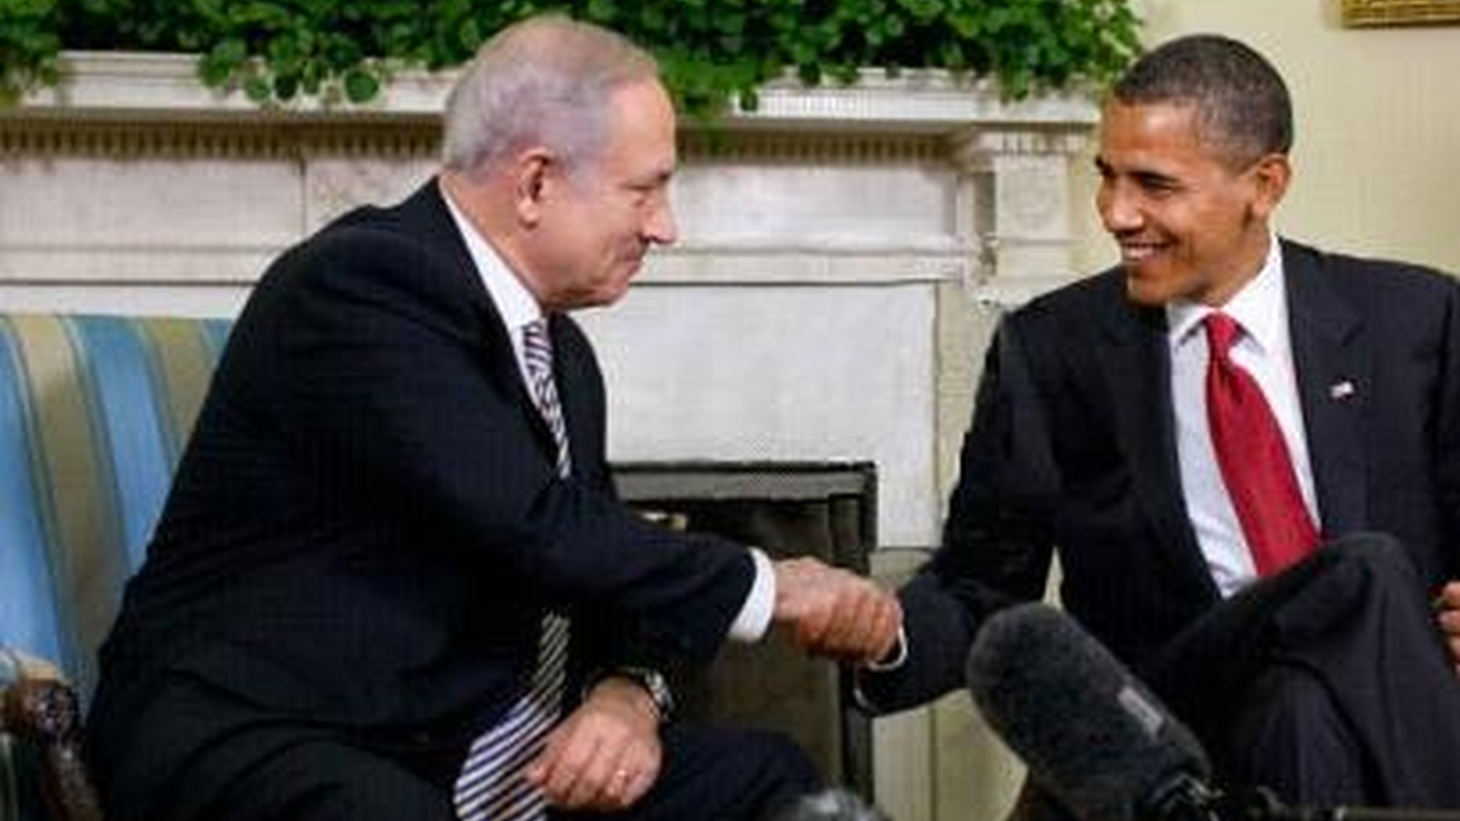 """Prime Minister Netanyahu met with President Obama in Washington yesterday, in what was described as an opportunity to highlight the strong ties between the US and Israel, after a difficult meeting in March. Netanyahu spoke out on Israeli concerns about Iran and peace talks with the Palestinians. In this rebroadcast of To the Point, what will Israel do about mending relations with Turkey, which have been strained over the Gaza humanitarian flotilla? Also, a new poll calls the governor's race a """"virtual tie,"""" and the independent review into the climate change research scandal. Guest host Sara Terry sits in for a vacationing Warren Olney."""